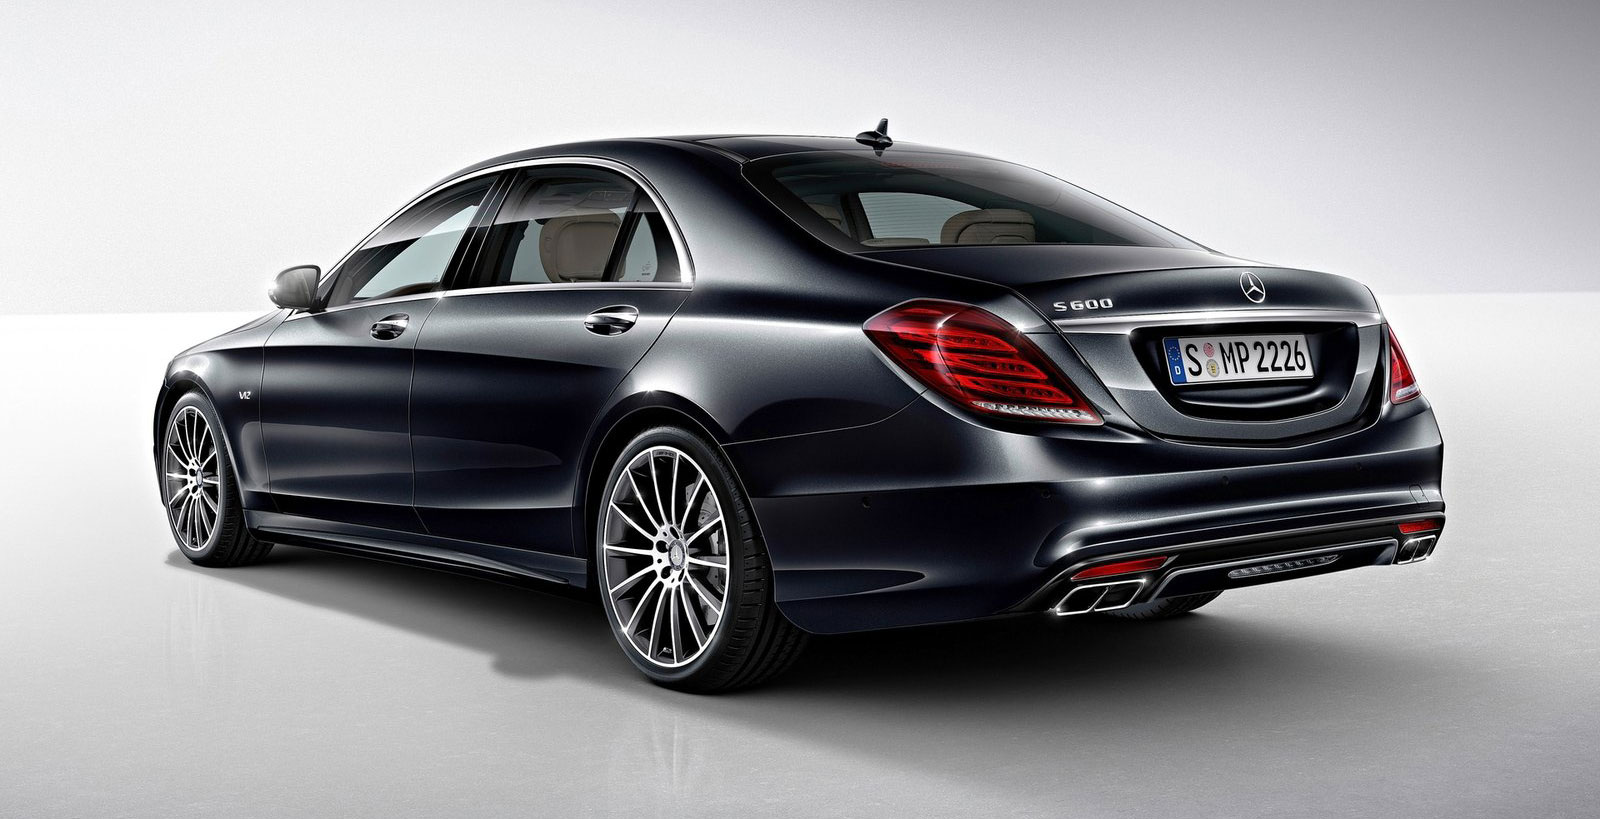 Mercedes benz s600 debuts in detroit the v12 w222 for Mercedes benz s60